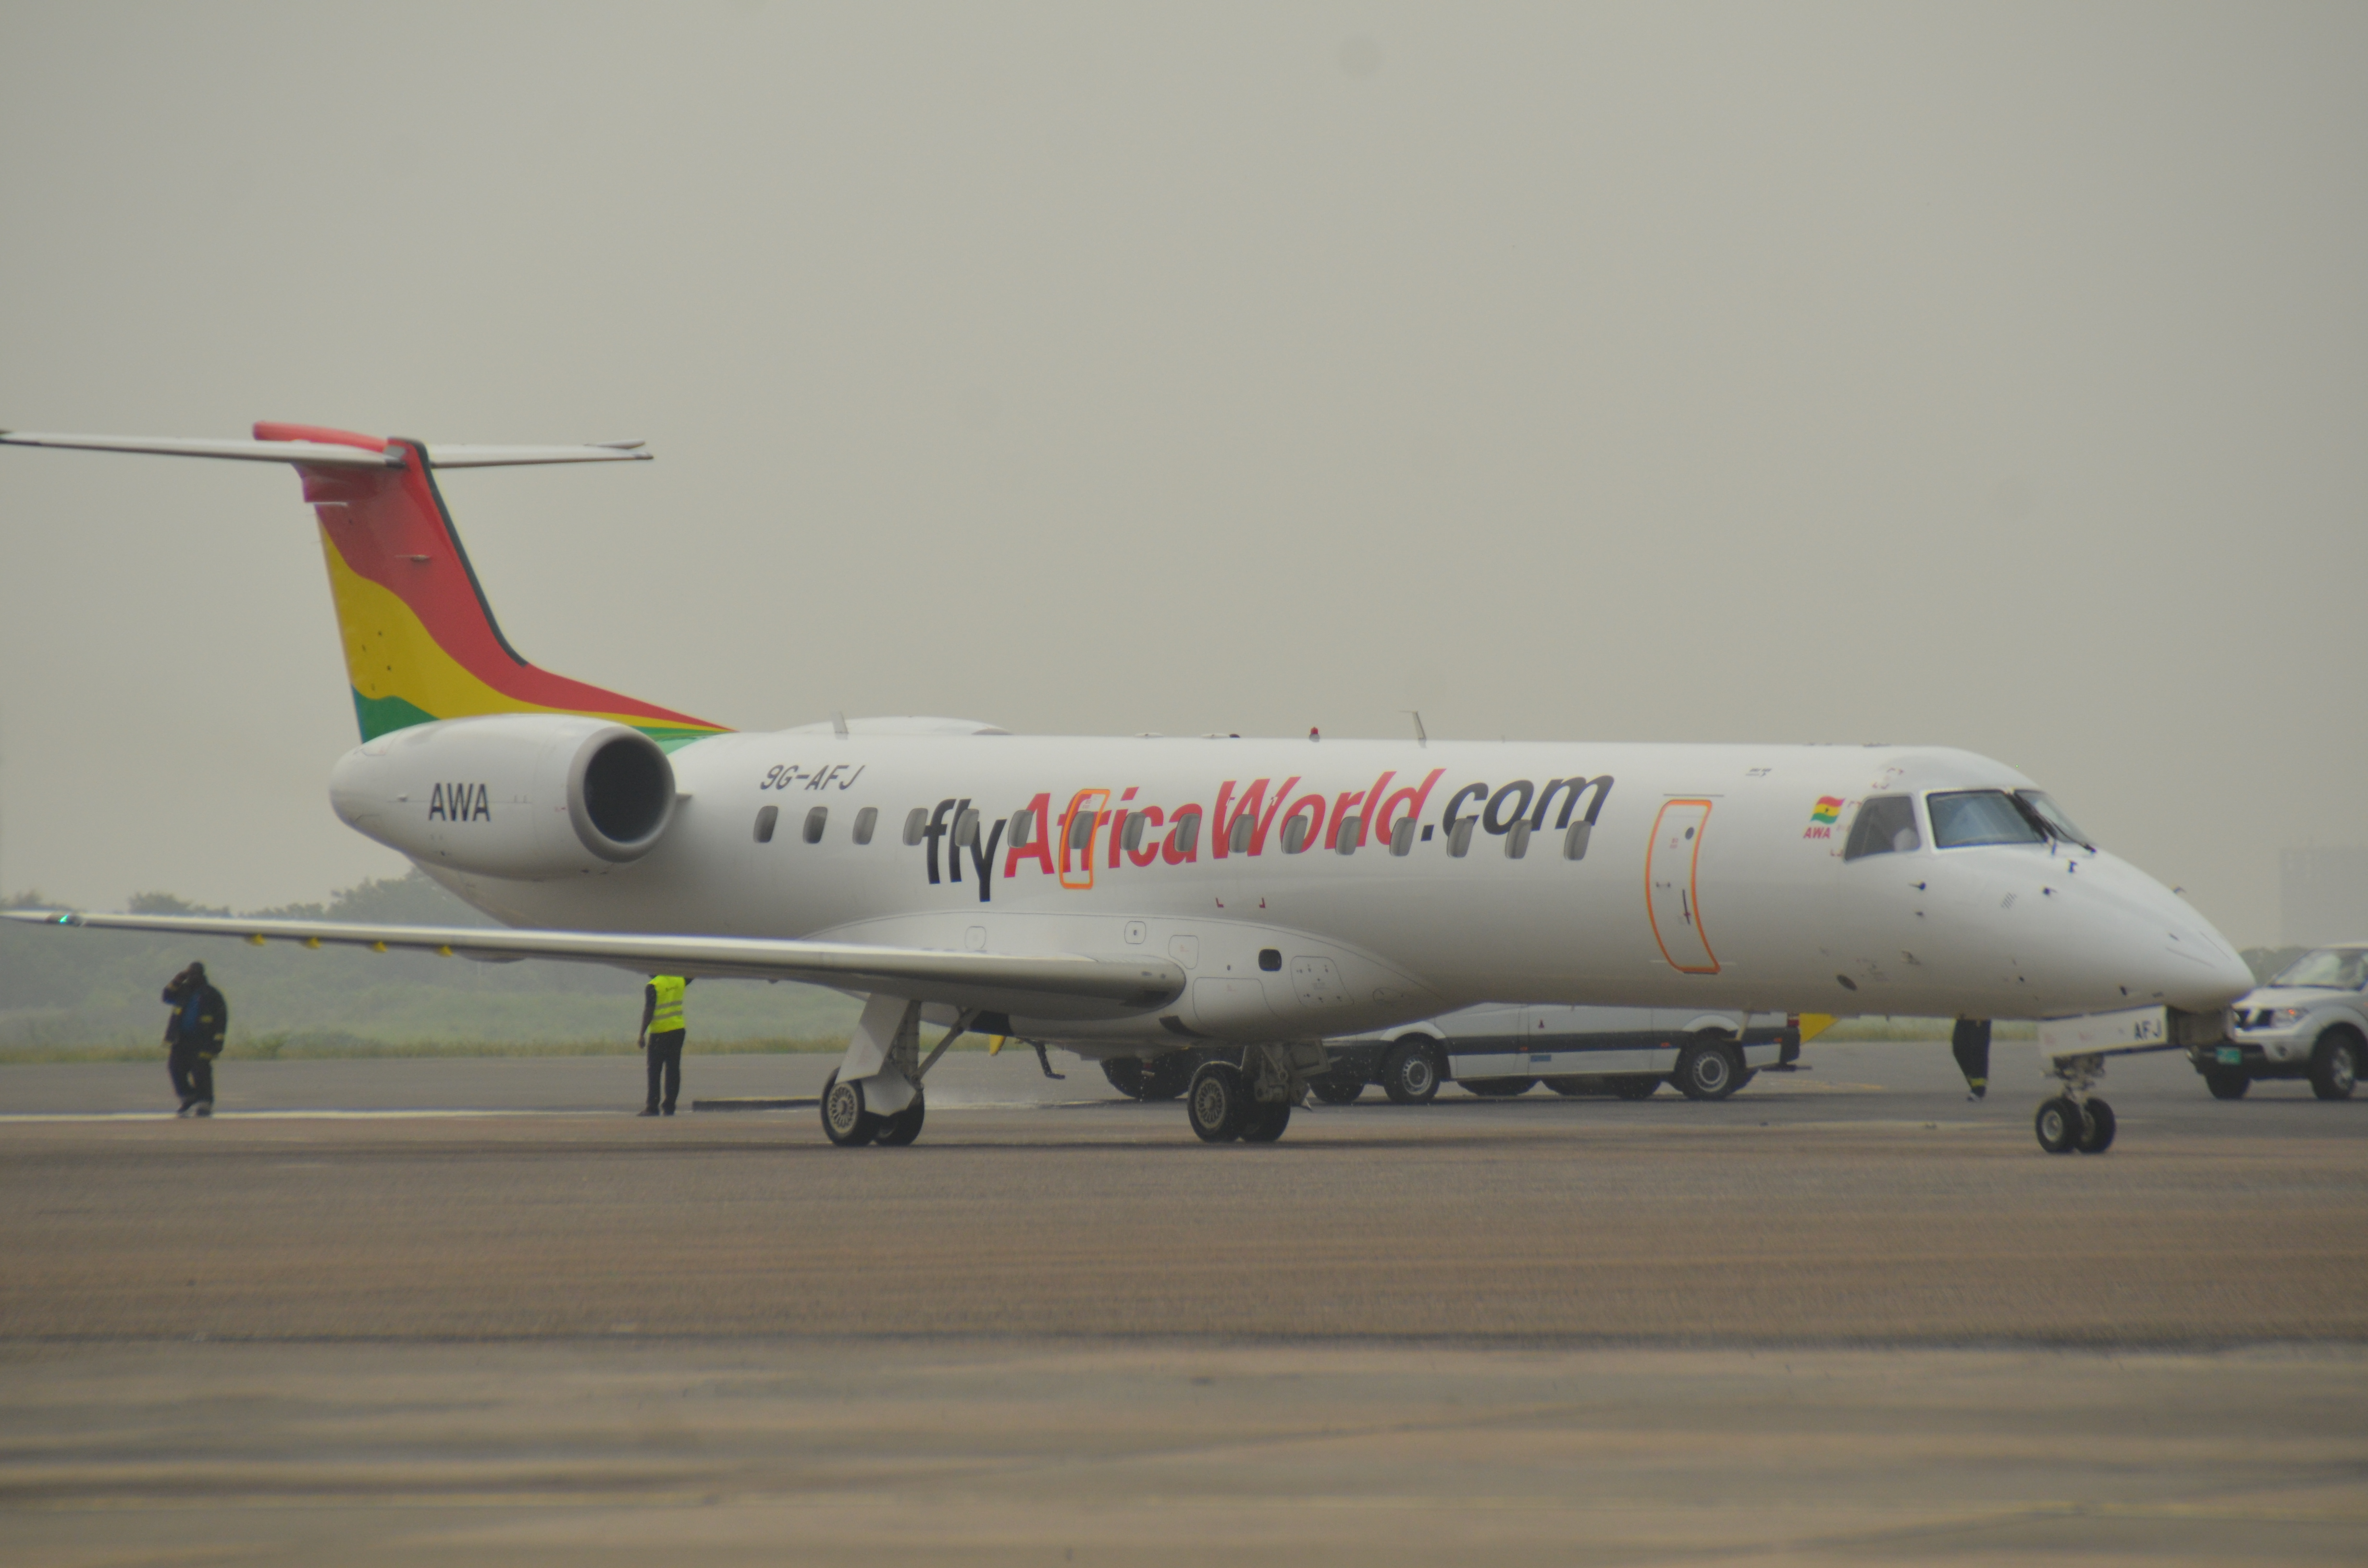 COVID-19: Africa World Airlines suspends all flights for two weeks